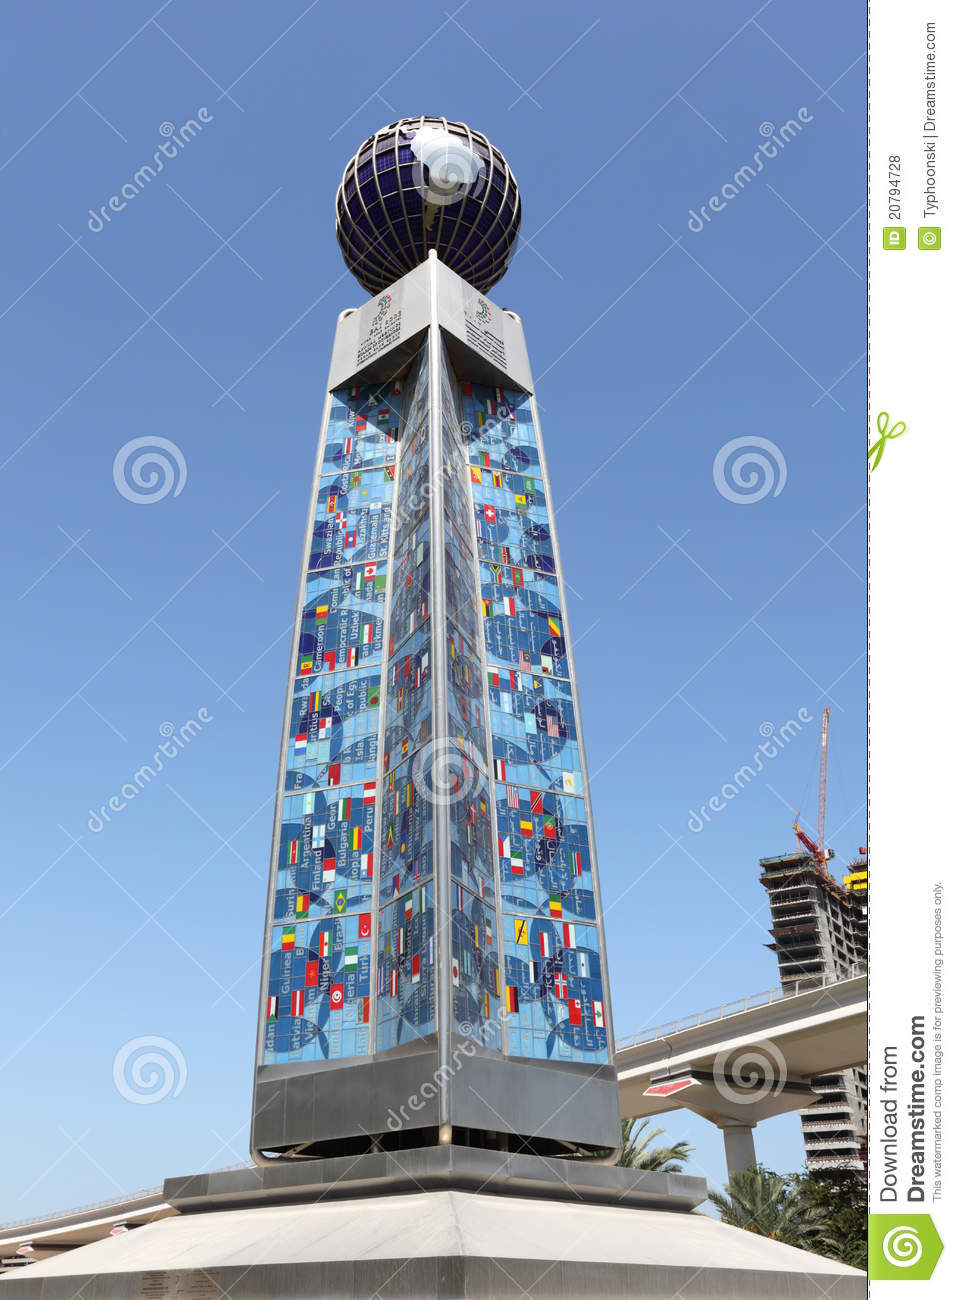 Fléau de World Trade Center de Dubaï